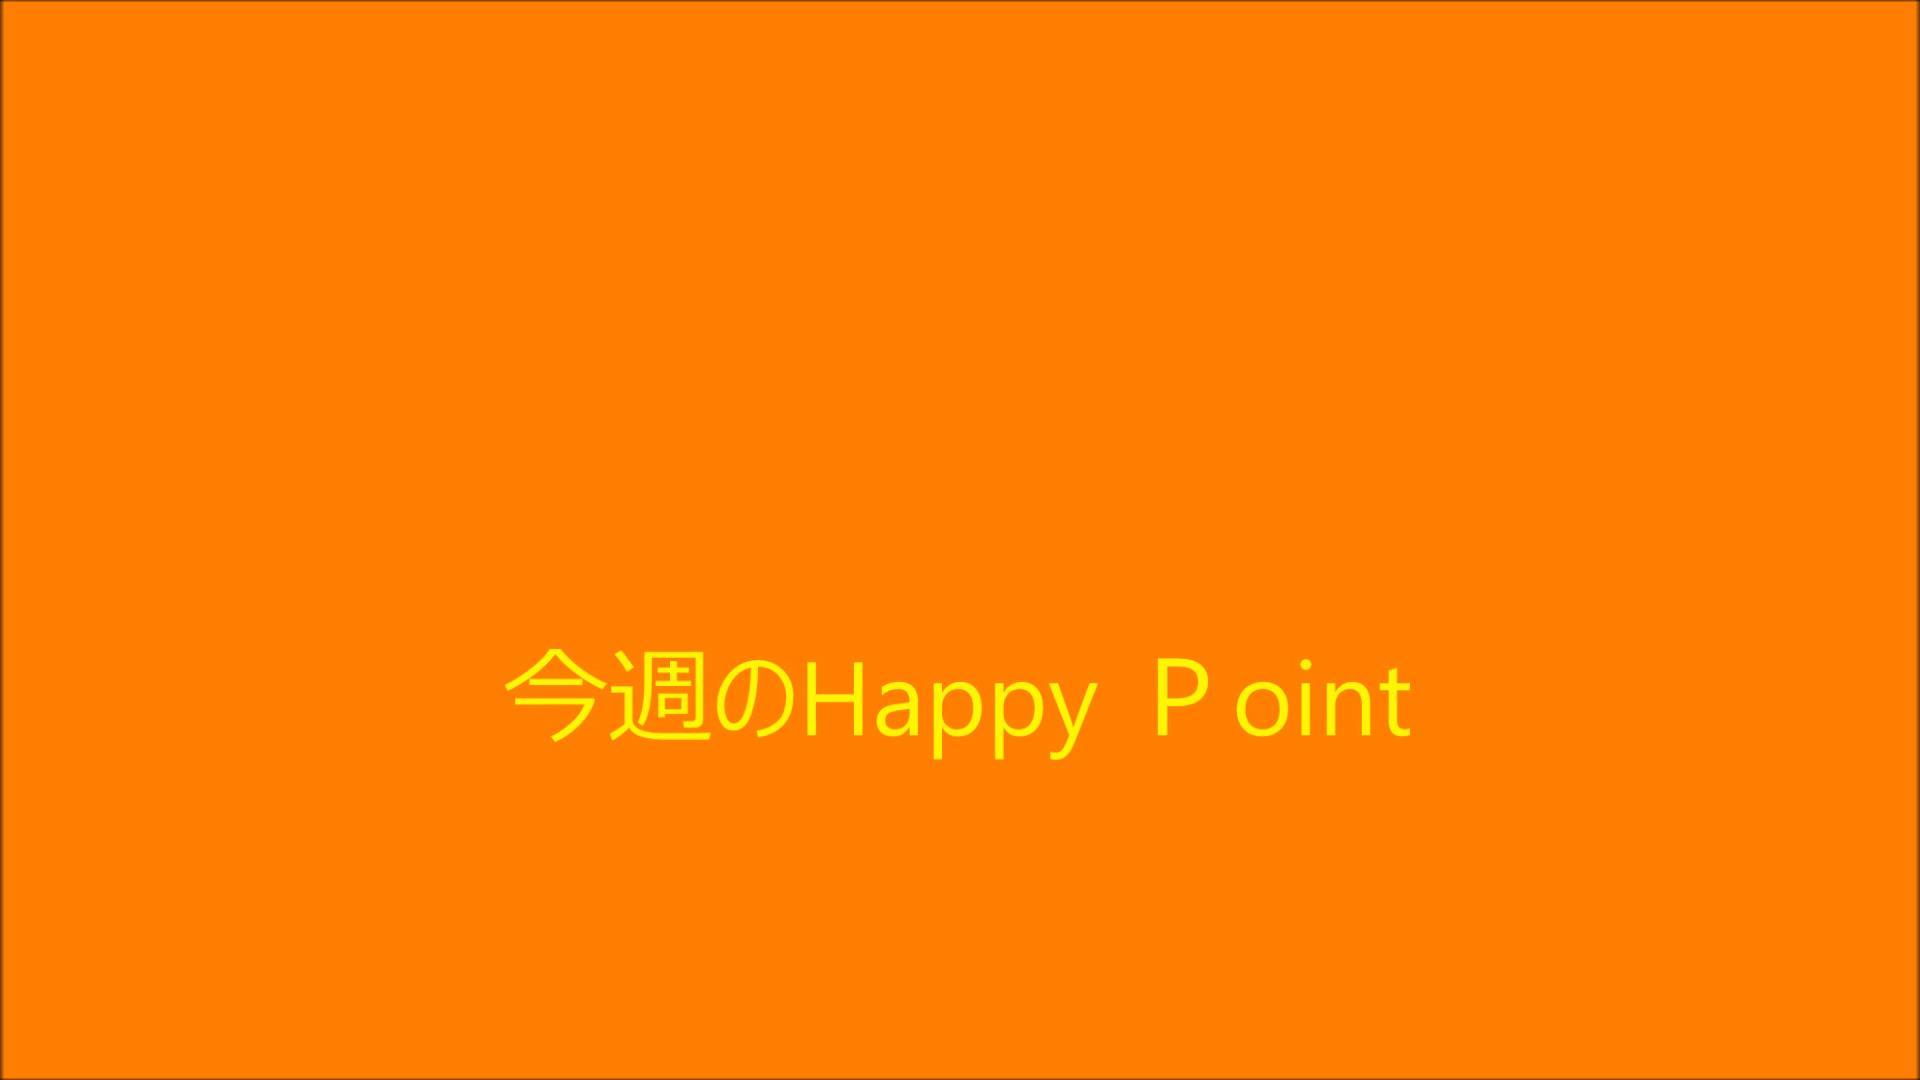 11月30日のHappy Point_a0168274_14595109.jpg